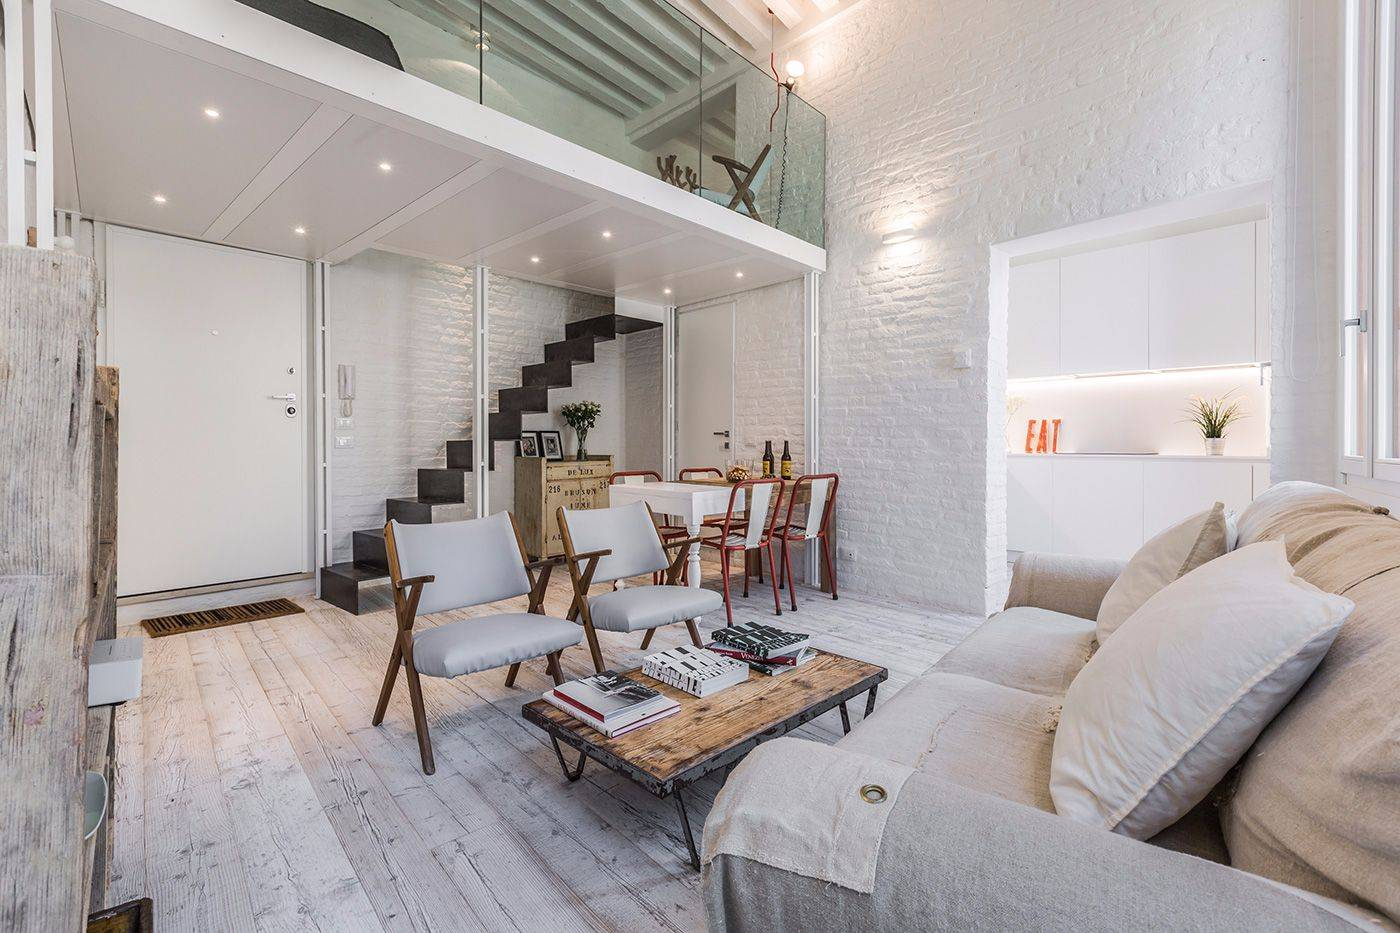 in the living room there is a mezzanine accessible through a nice metal stairway